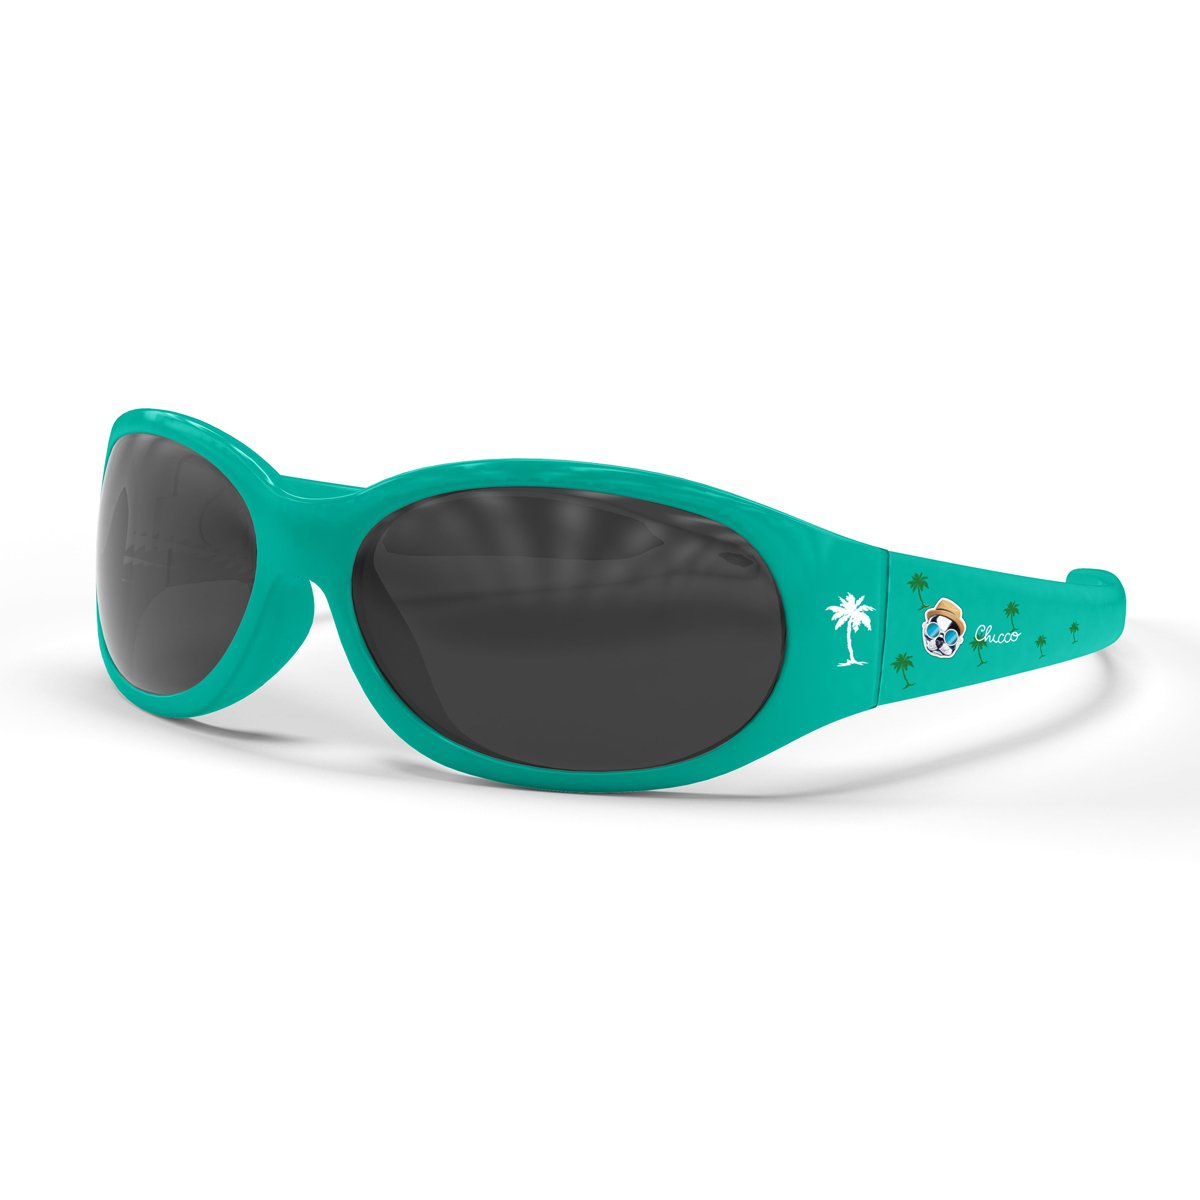 Chicco Cartoon - Gafas de sol 12 m+, color verde